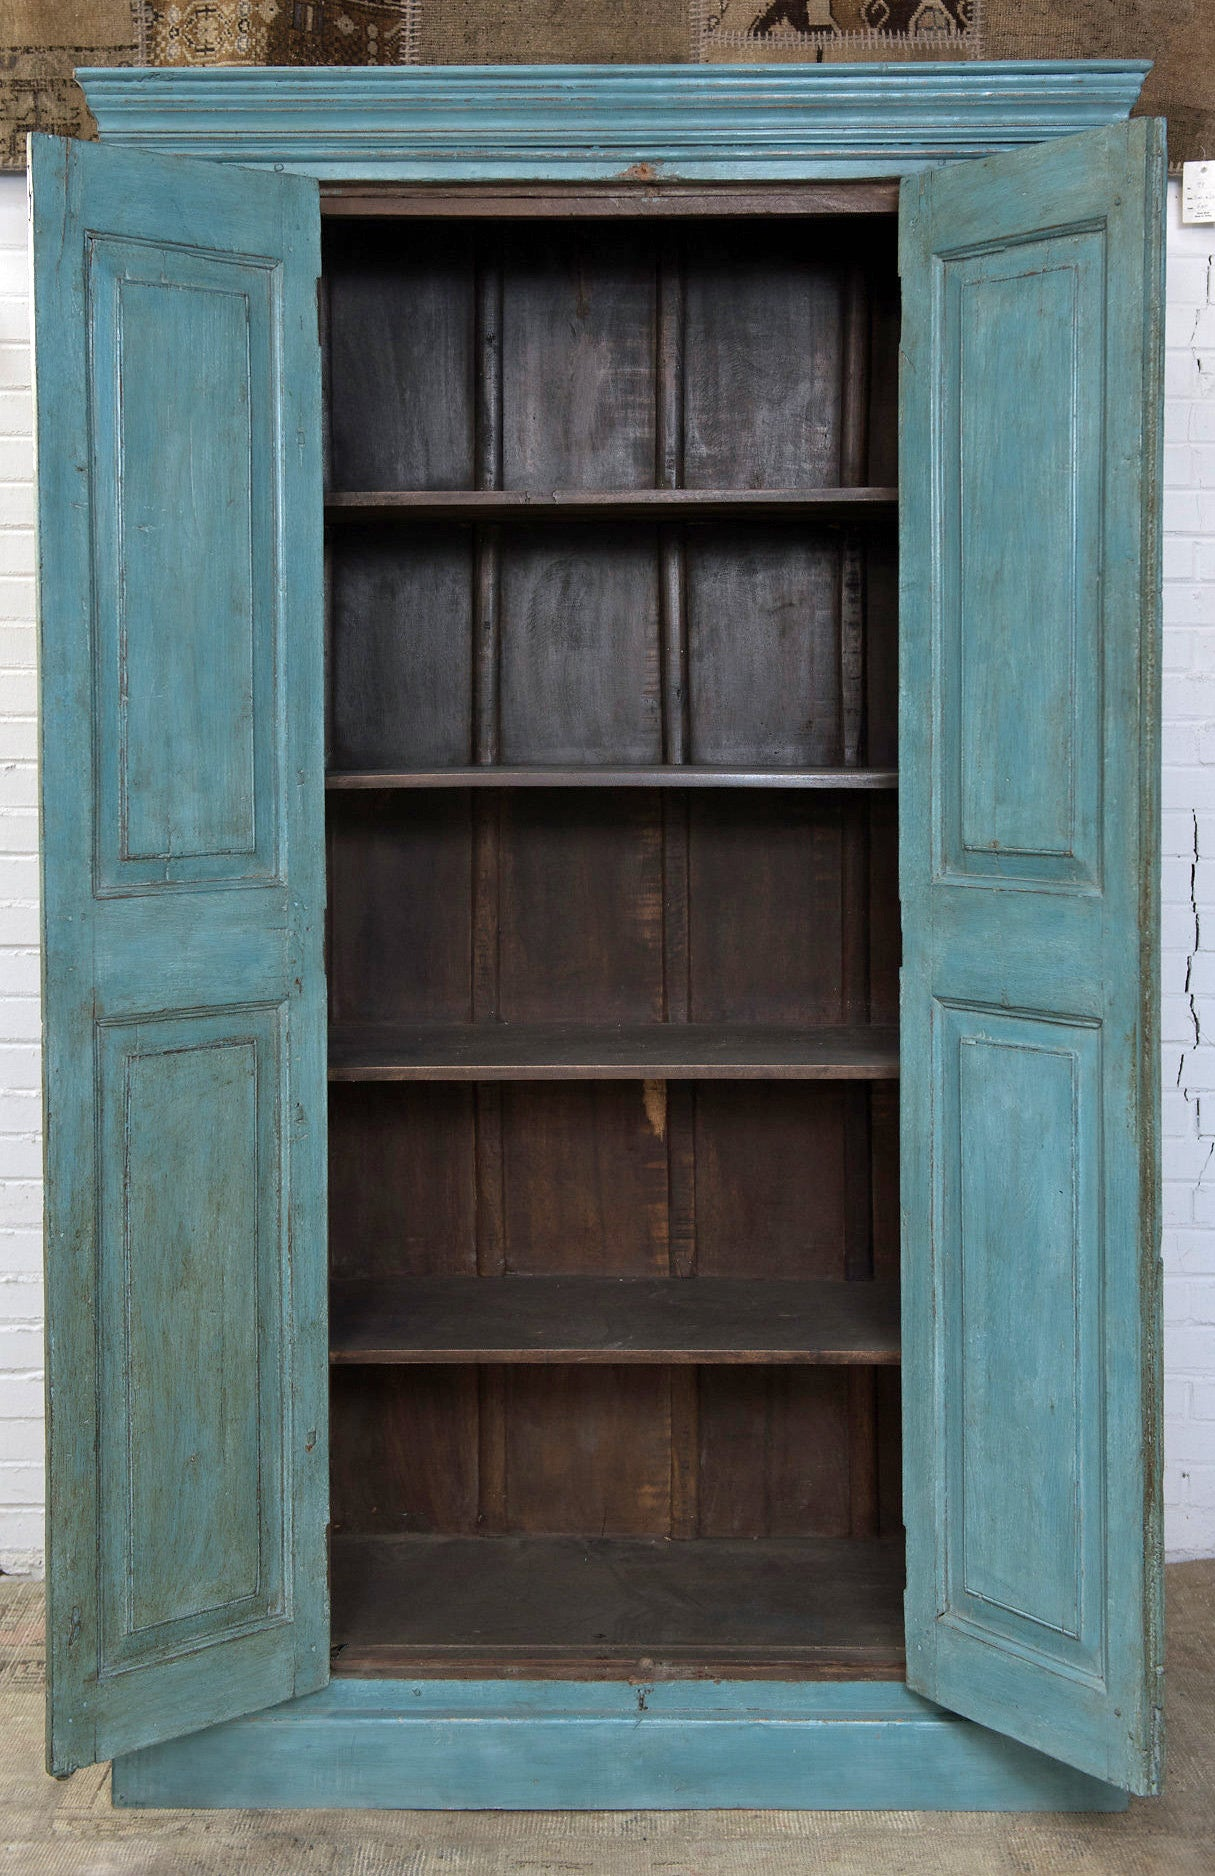 Painted Teakwood armoire, made from an antique door facade - Vintage Industrial Metal Locker - Sunnyside TC